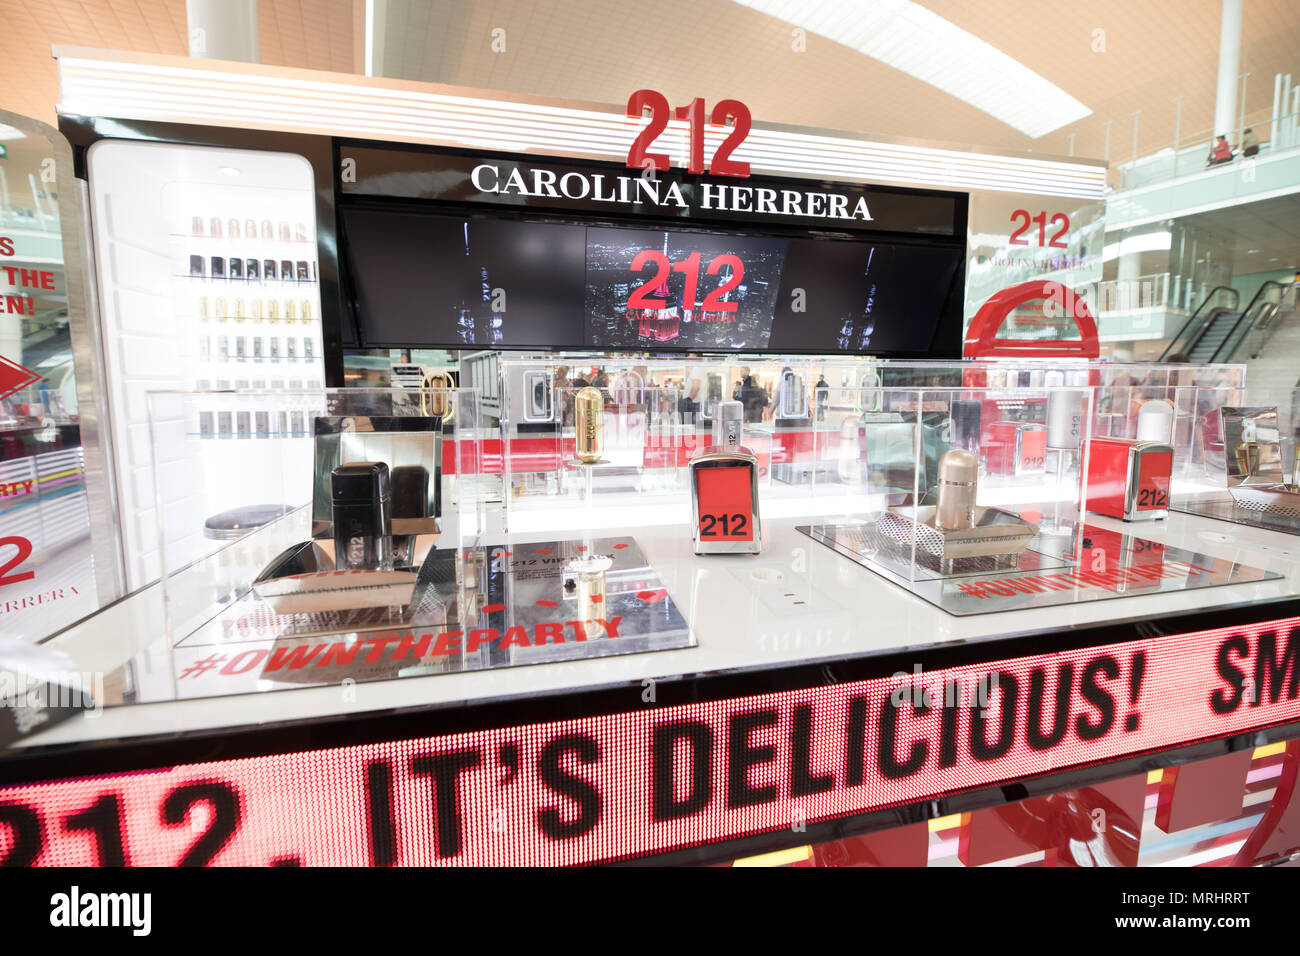 d1ab46fbe6 Barcelona airport, Spain CAROLINA HERRERA store business Stock Photo ...